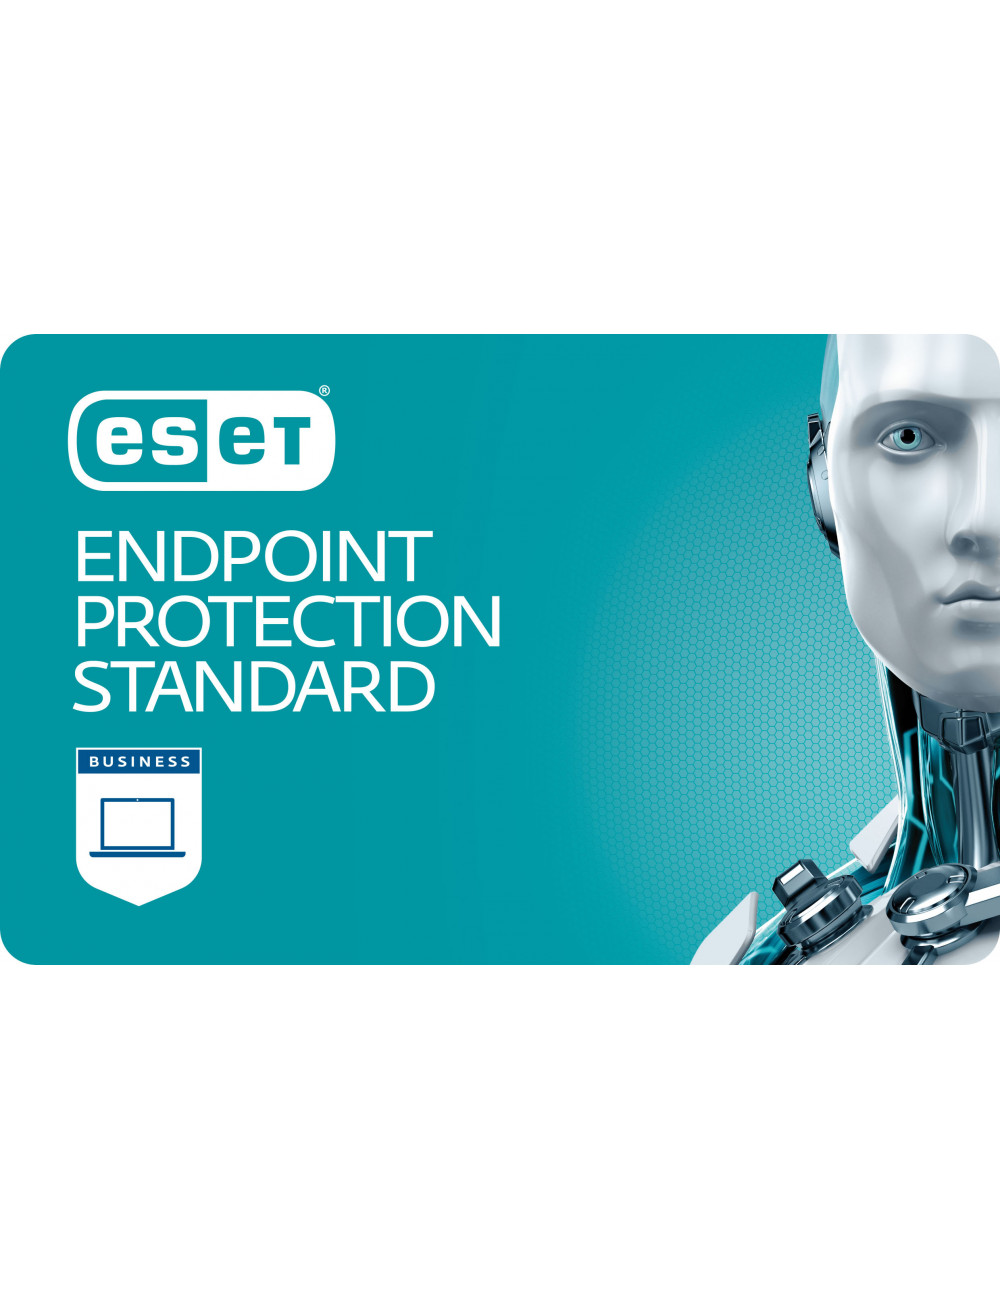 ESET Endpoint Protection Standard (1-10 devices) - License 1 device - 1 year